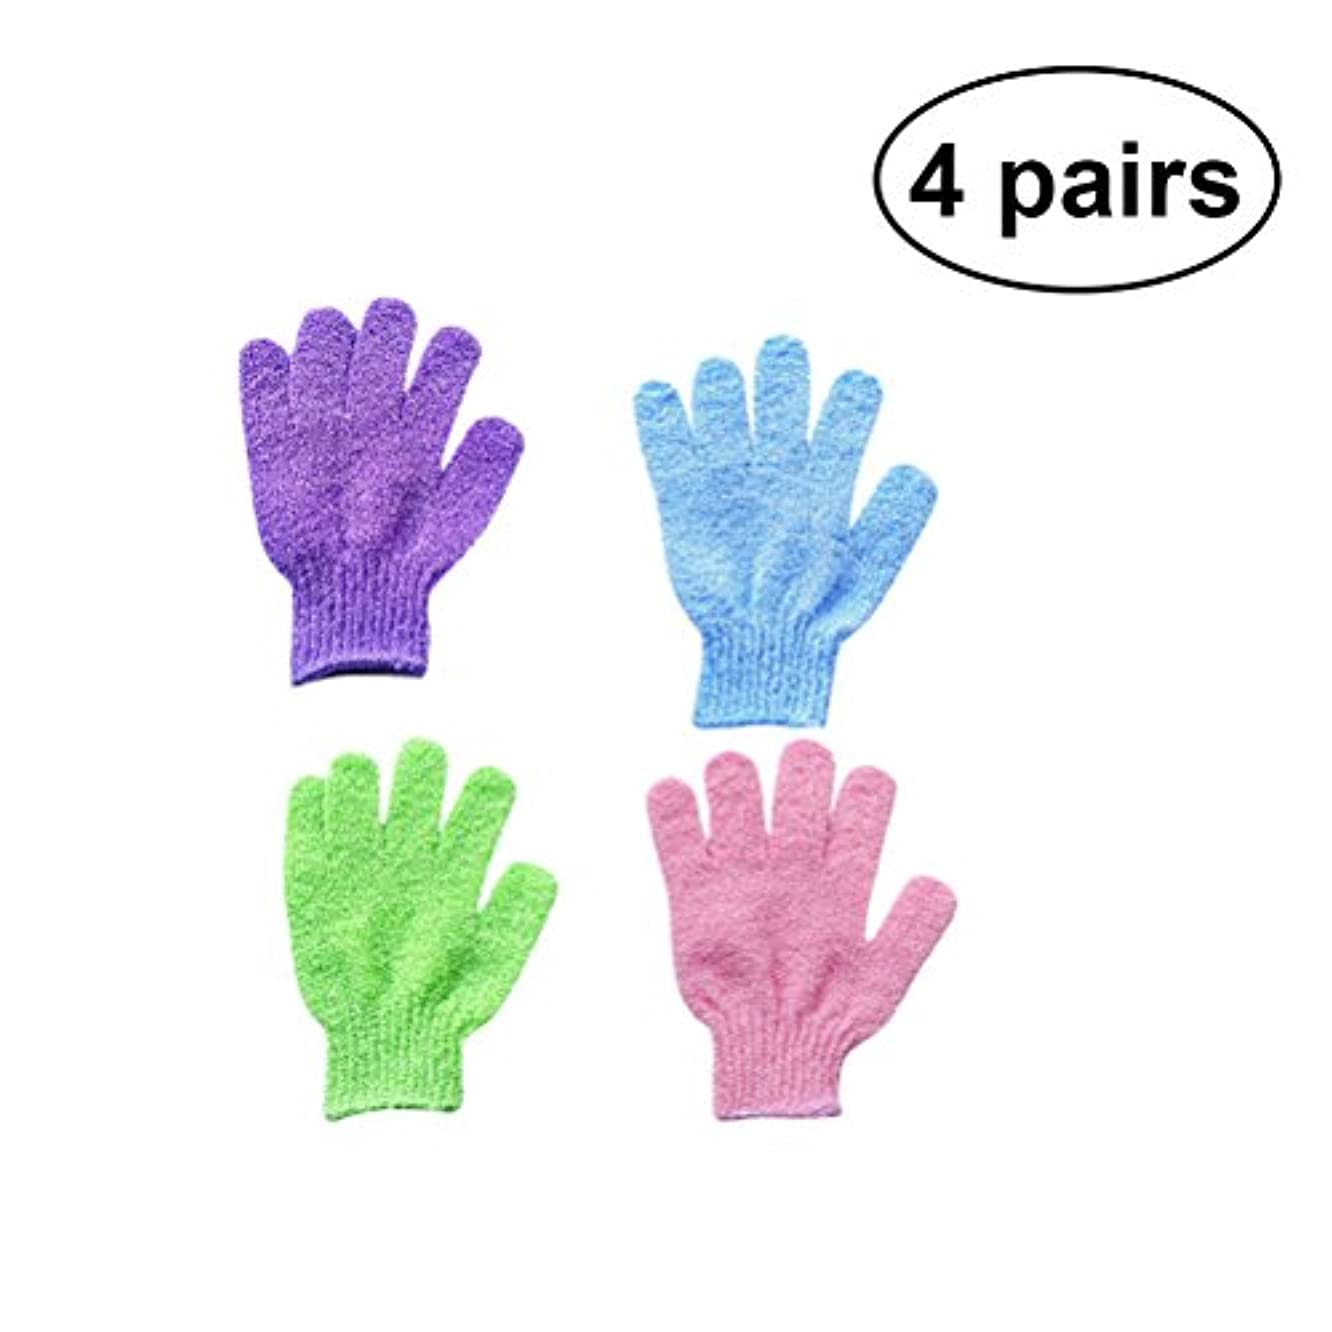 ロバ除去侵入Healifty 4 Pairs Exfoliating Bath Gloves Shower Mitts Exfoliating Body Spa Massage Dead Skin Cell Remover